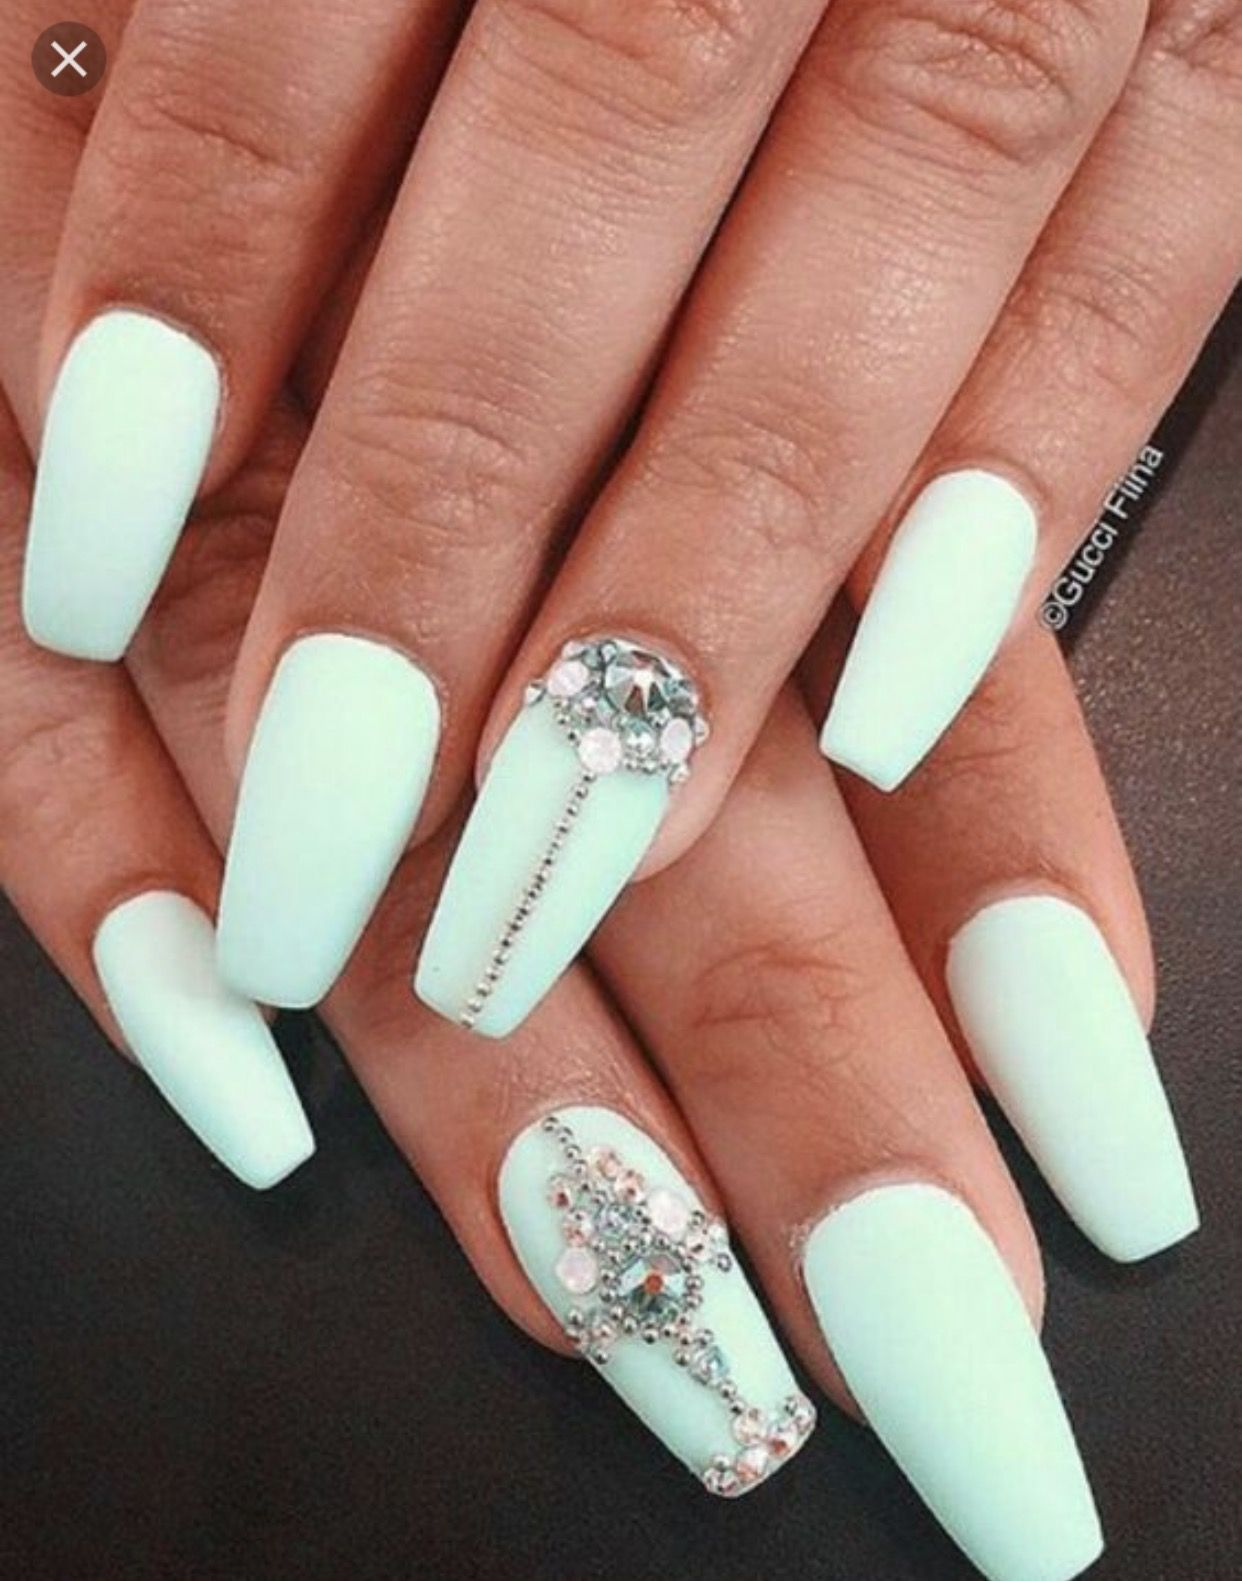 Pin by Star on Nails | Pinterest | Quinceanera ideas, Beauty nails ...